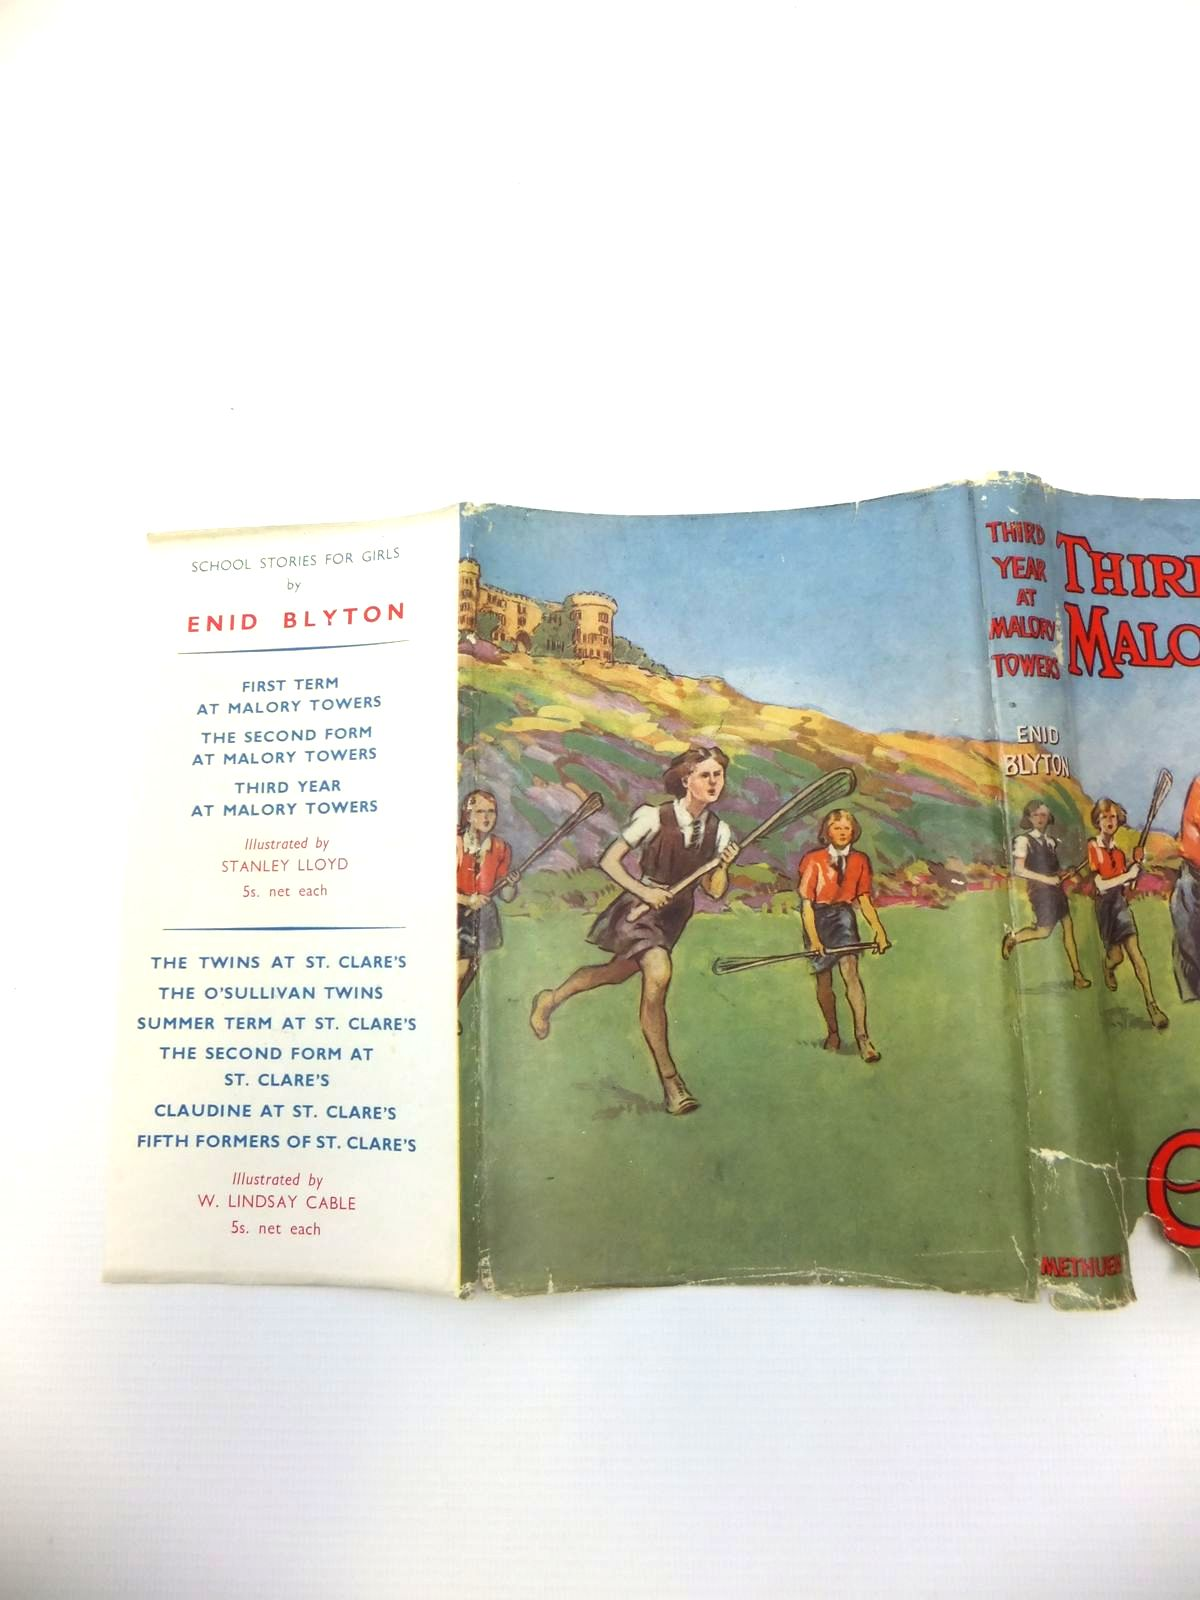 THIRD YEAR AT MALORY TOWERS written by Blyton, Enid, STOCK